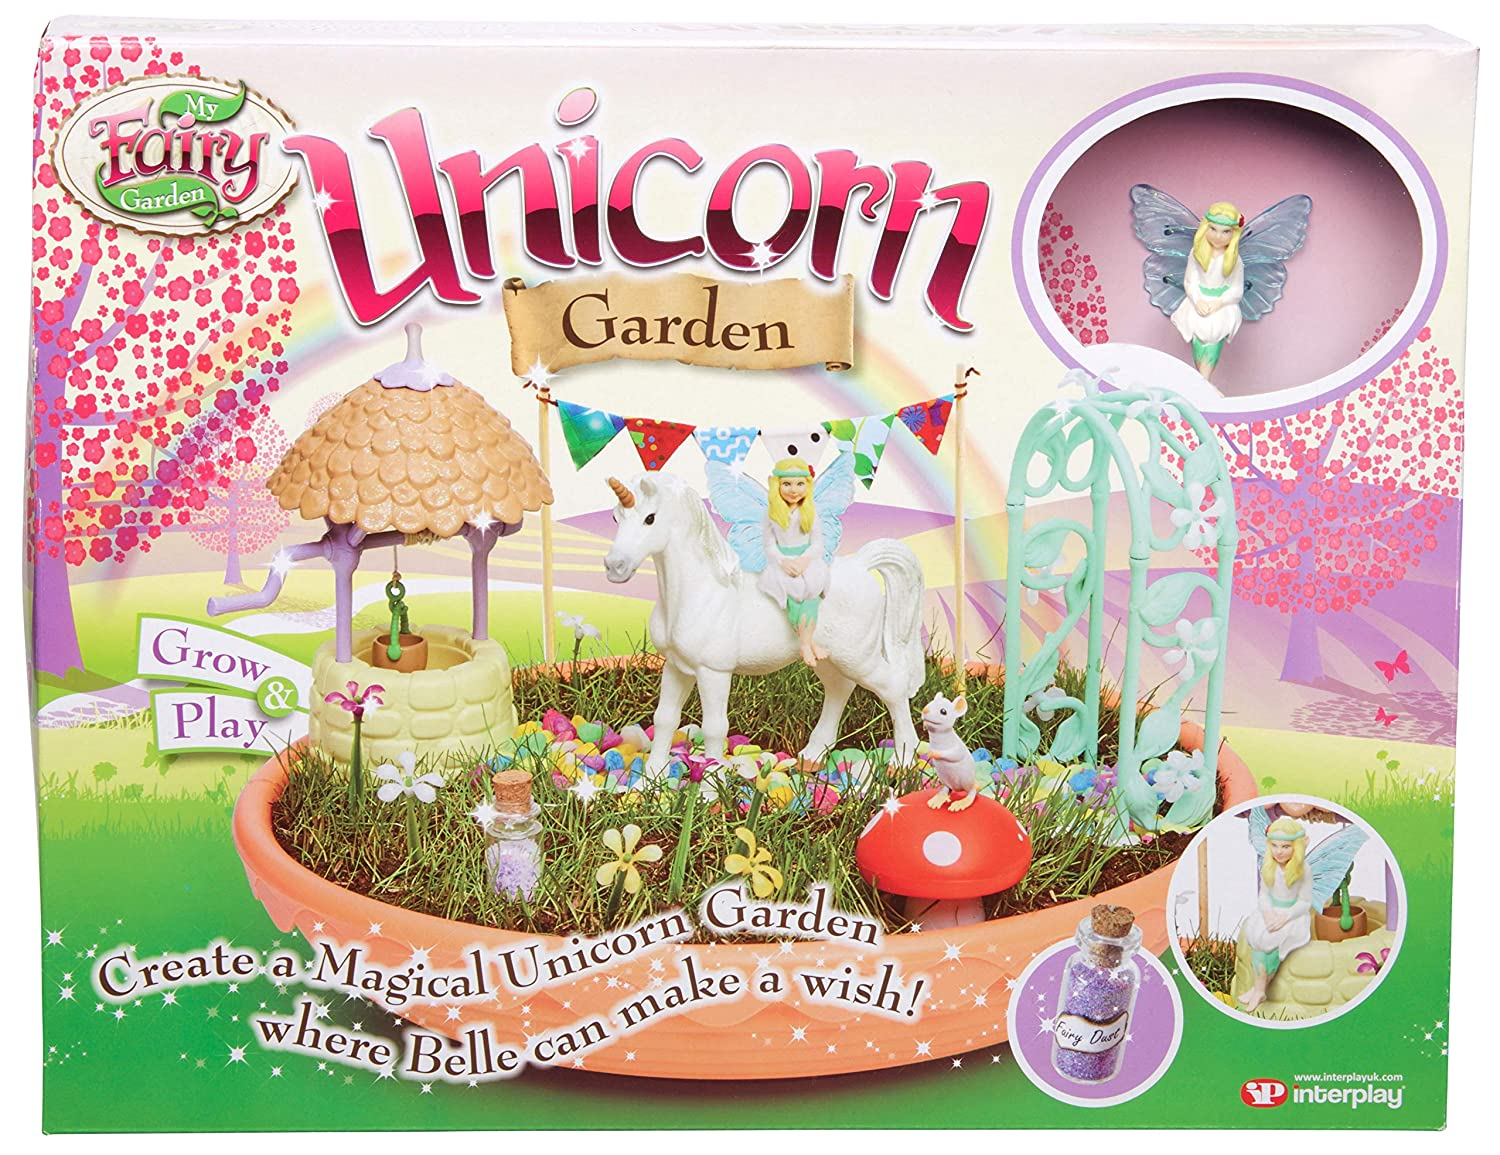 Top 23 Best Unicorn Toys and Gifts for Girls (Reviews in 2019) 14